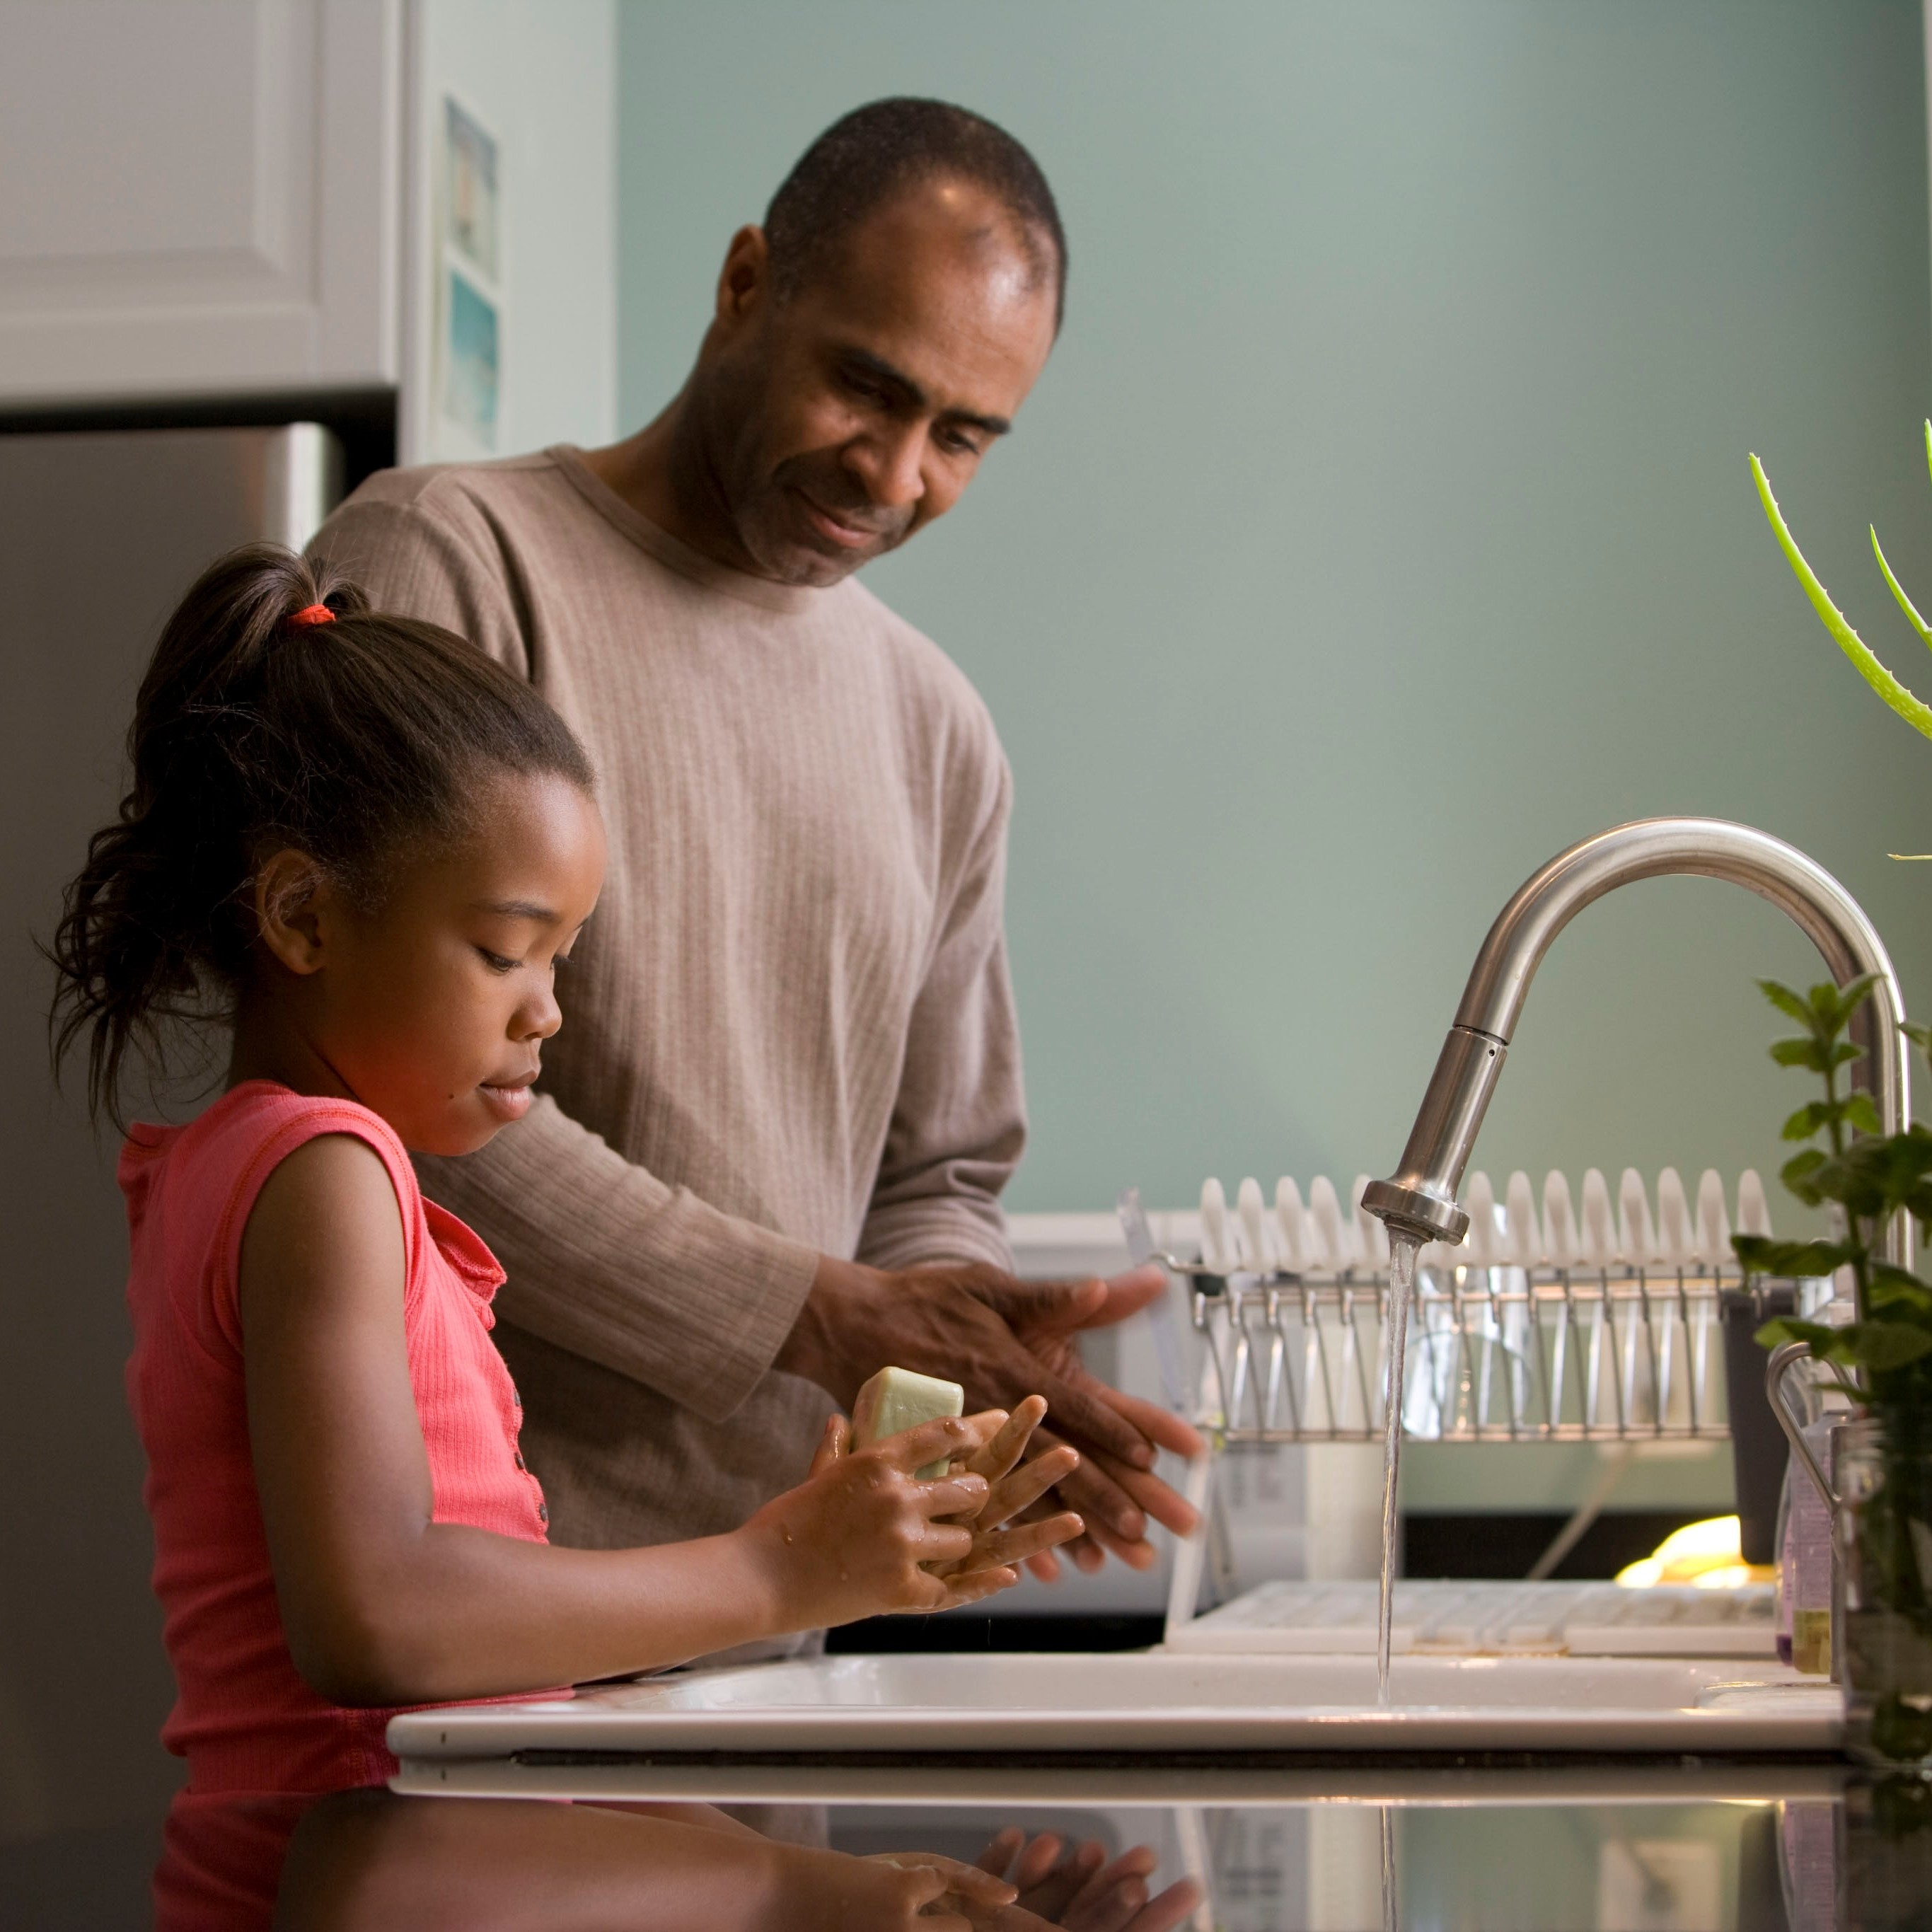 Father and daughter washing hands in kitchen